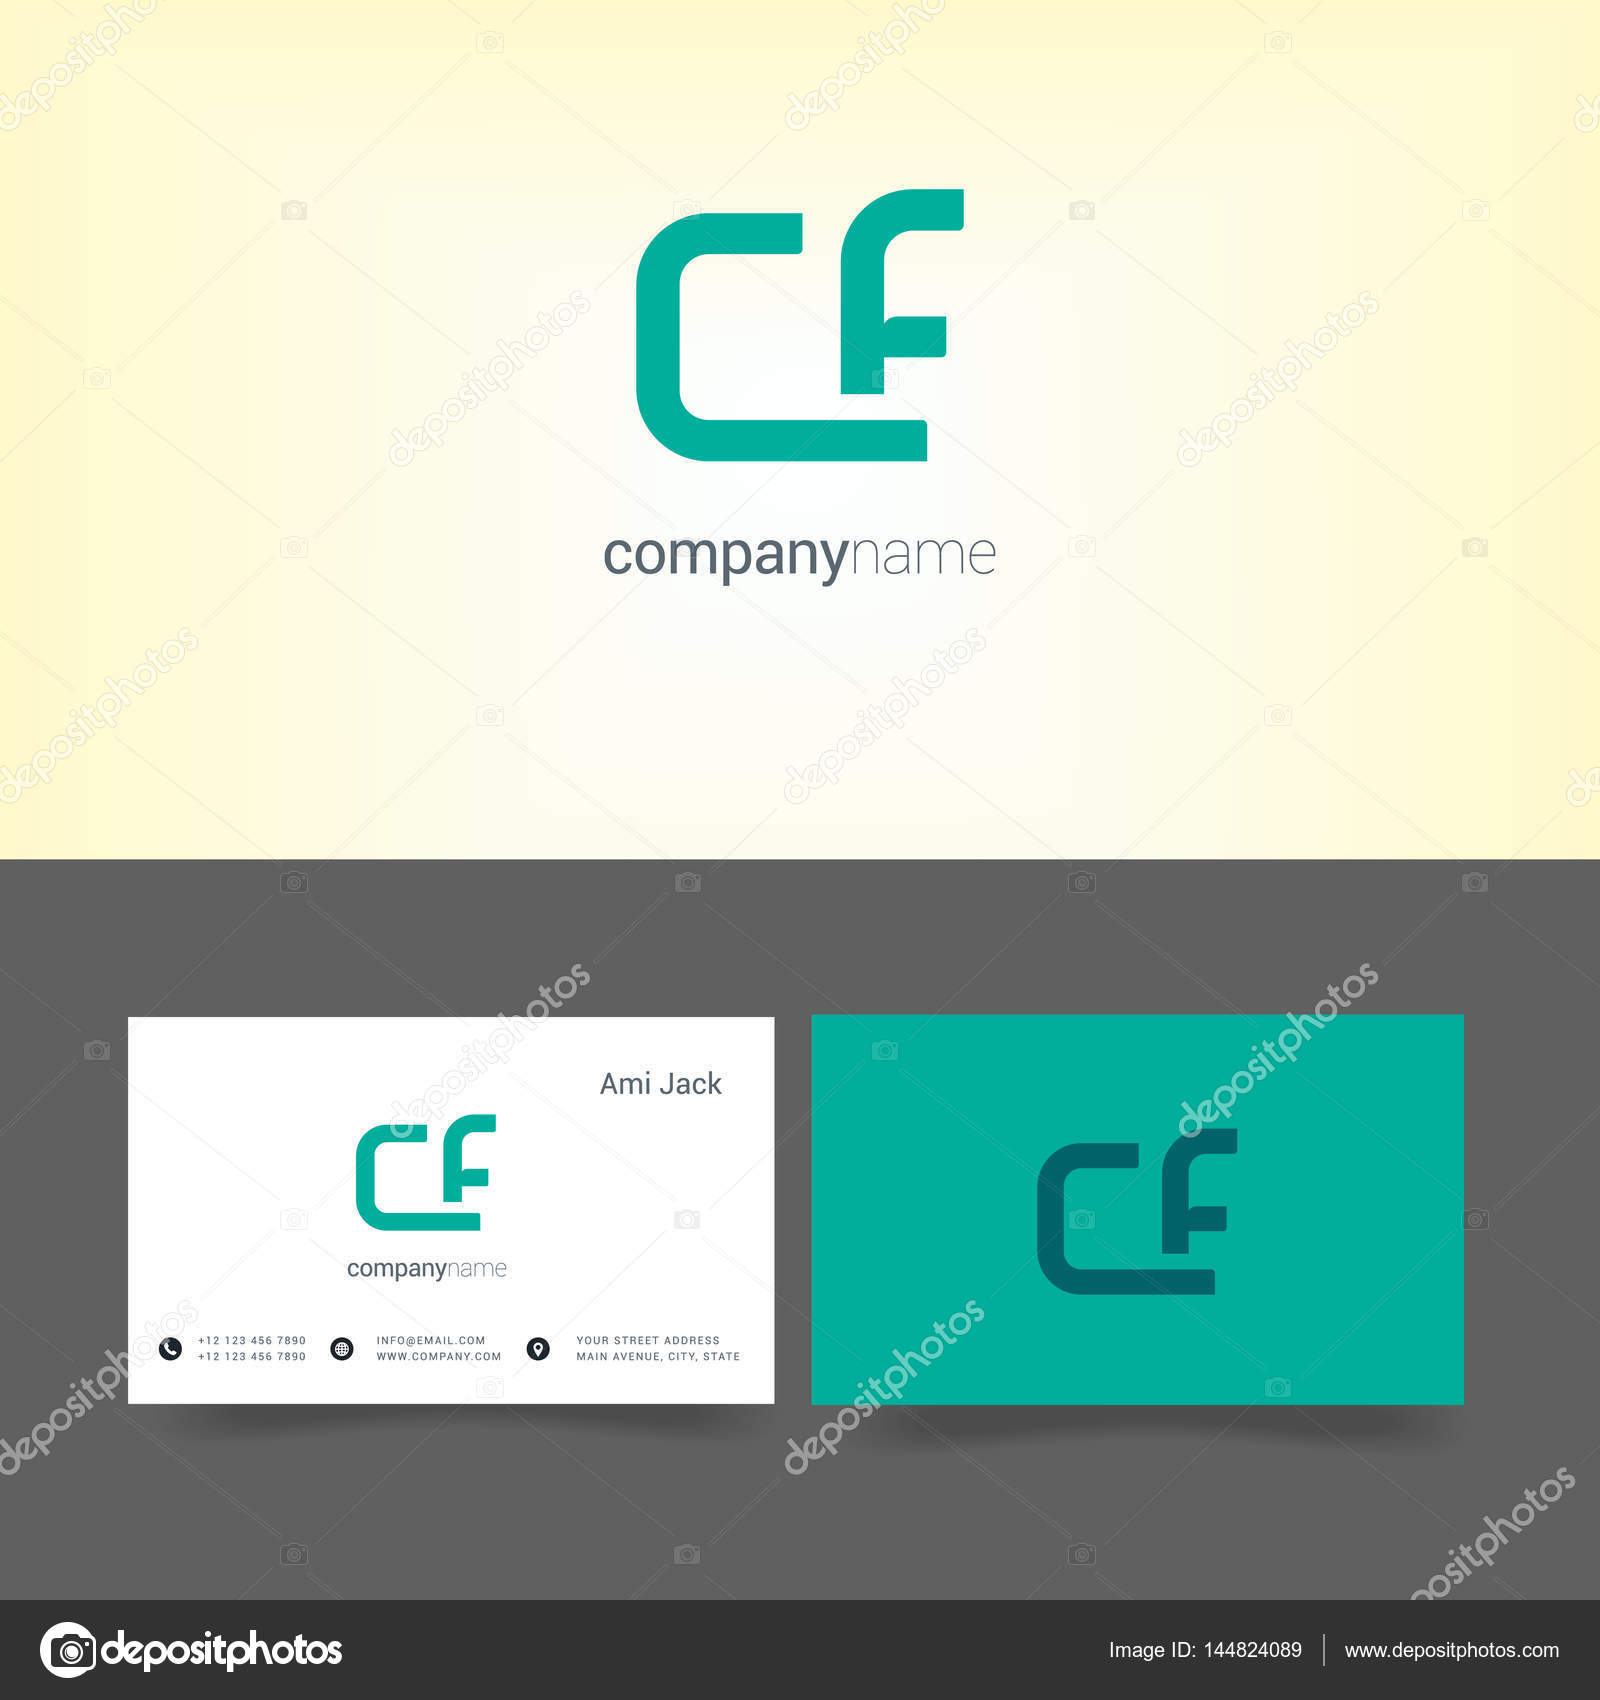 Company logo with business card templates stock vector deepzdzyn cf joint letters company logo with business card templates vector illustration vector by deepzdzyn wajeb Images